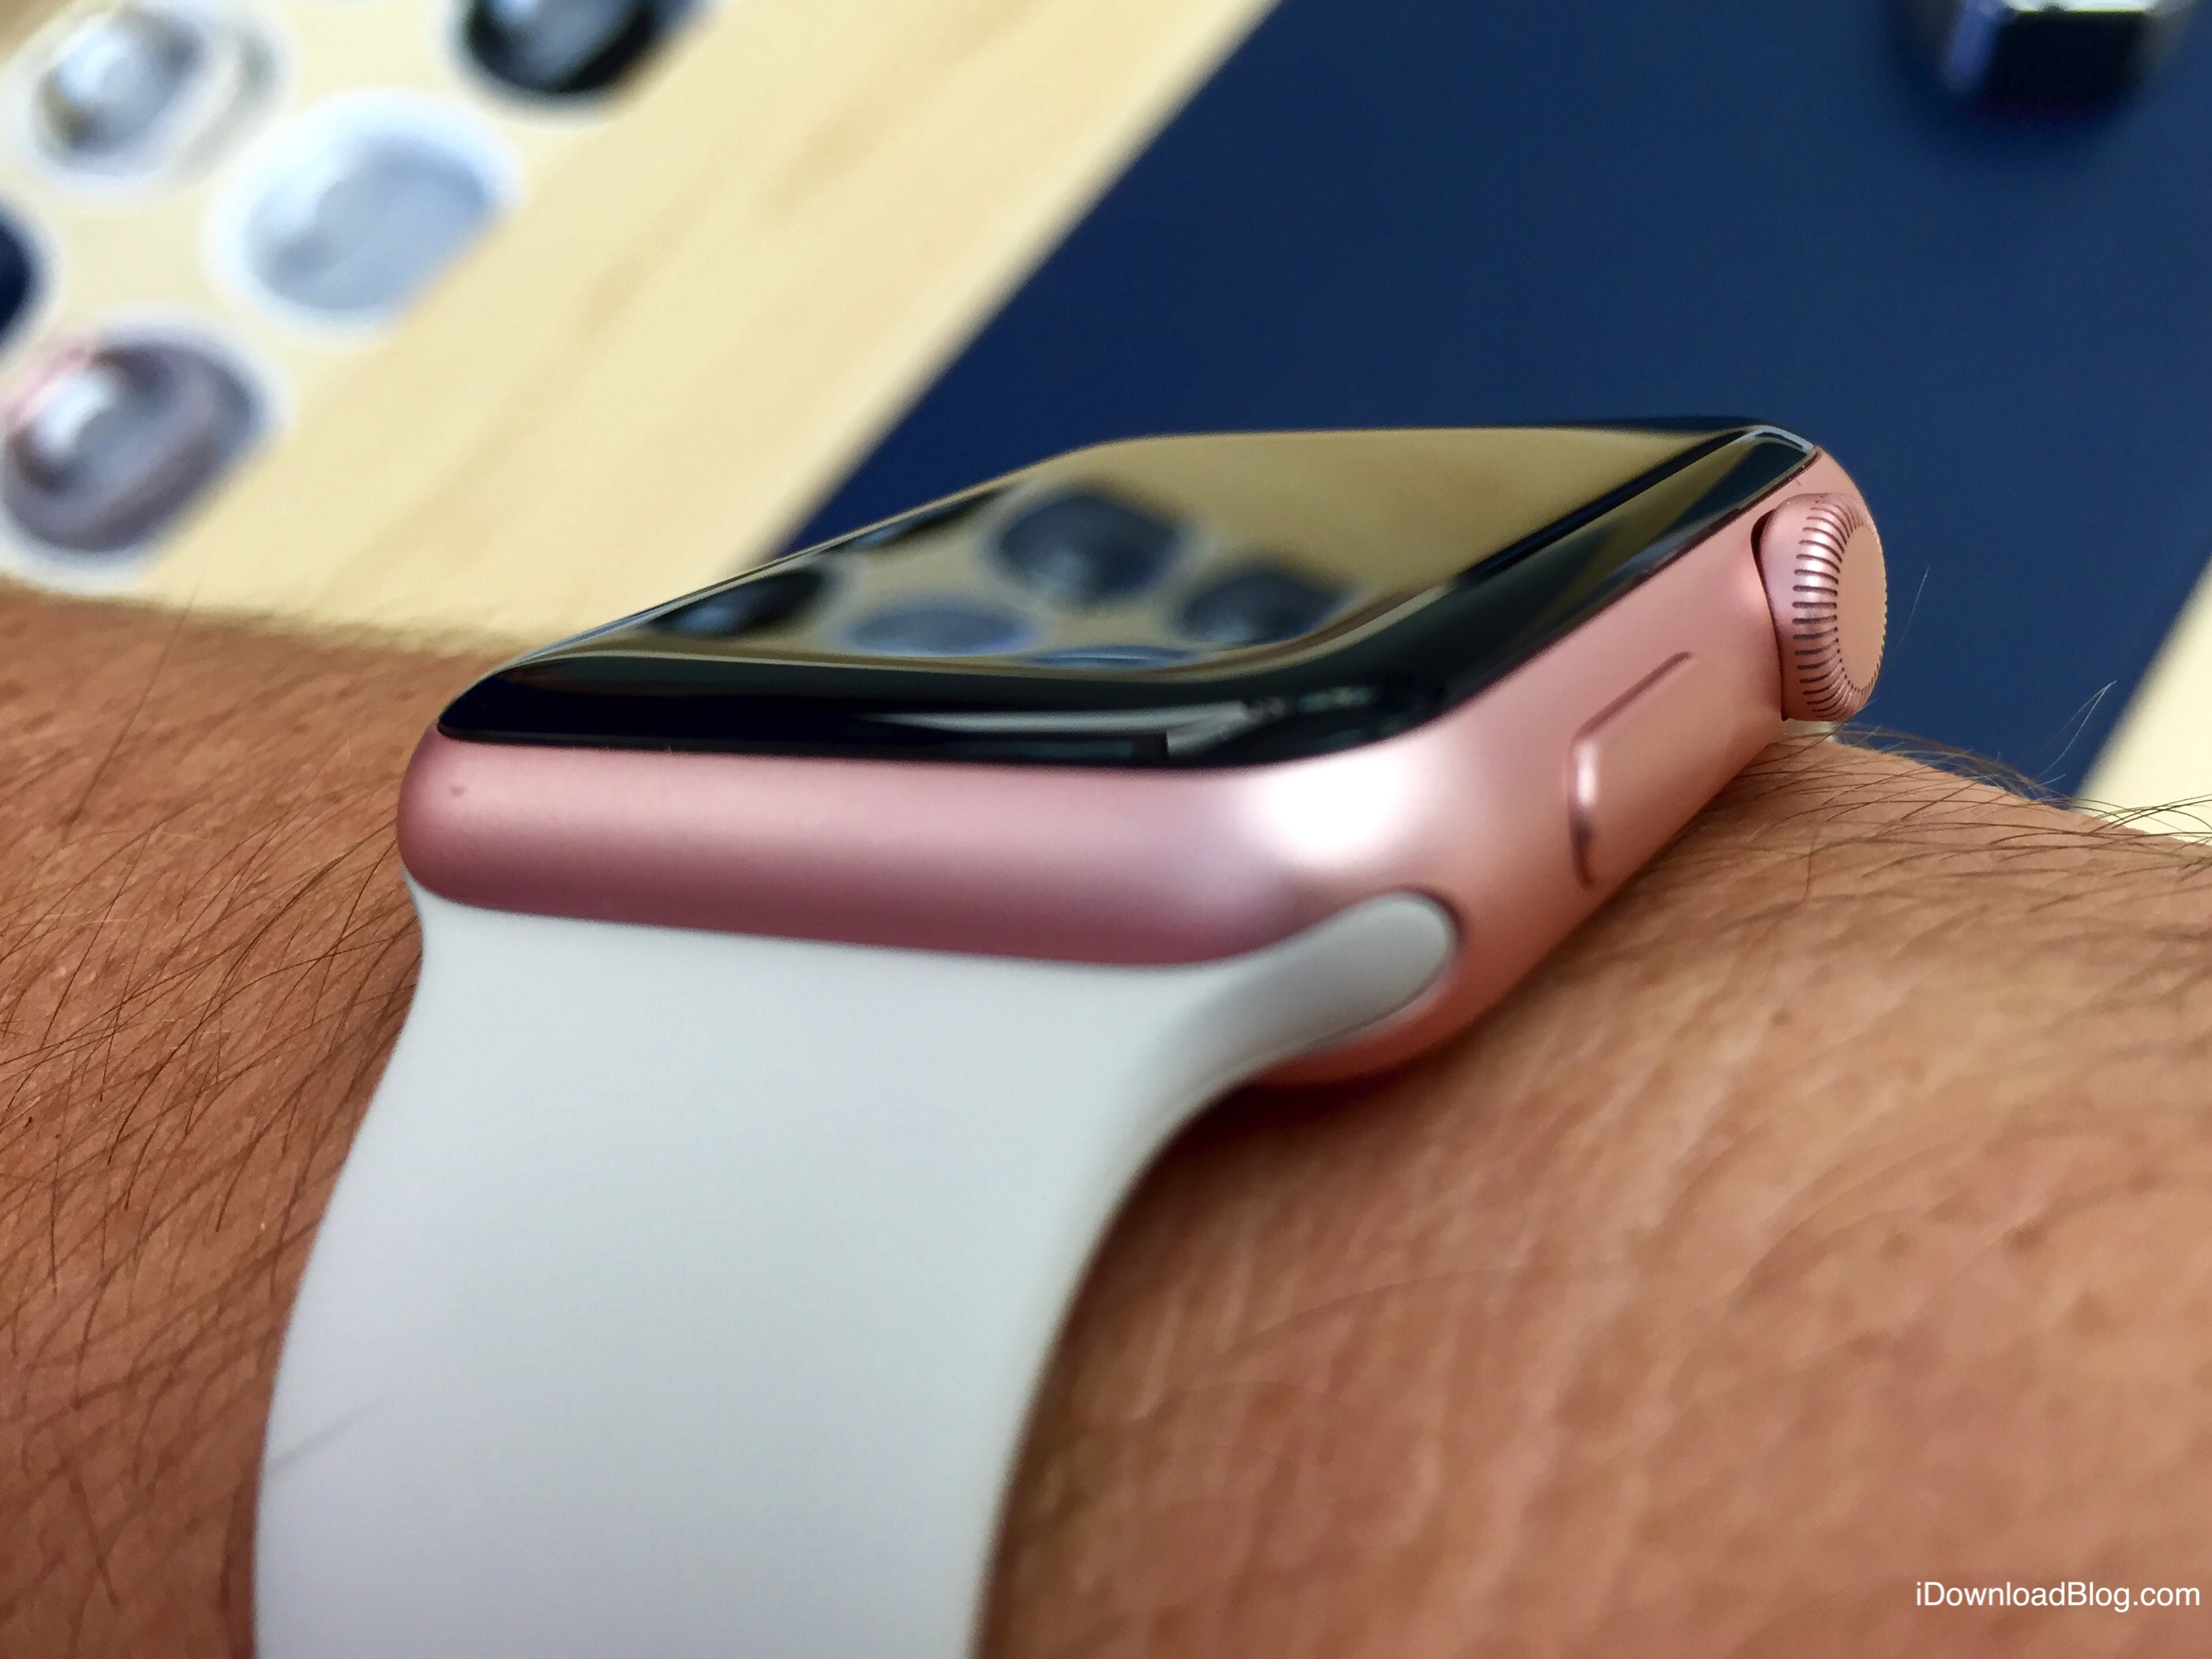 Rose Gold Aluminum Apple Watch Hands on 7